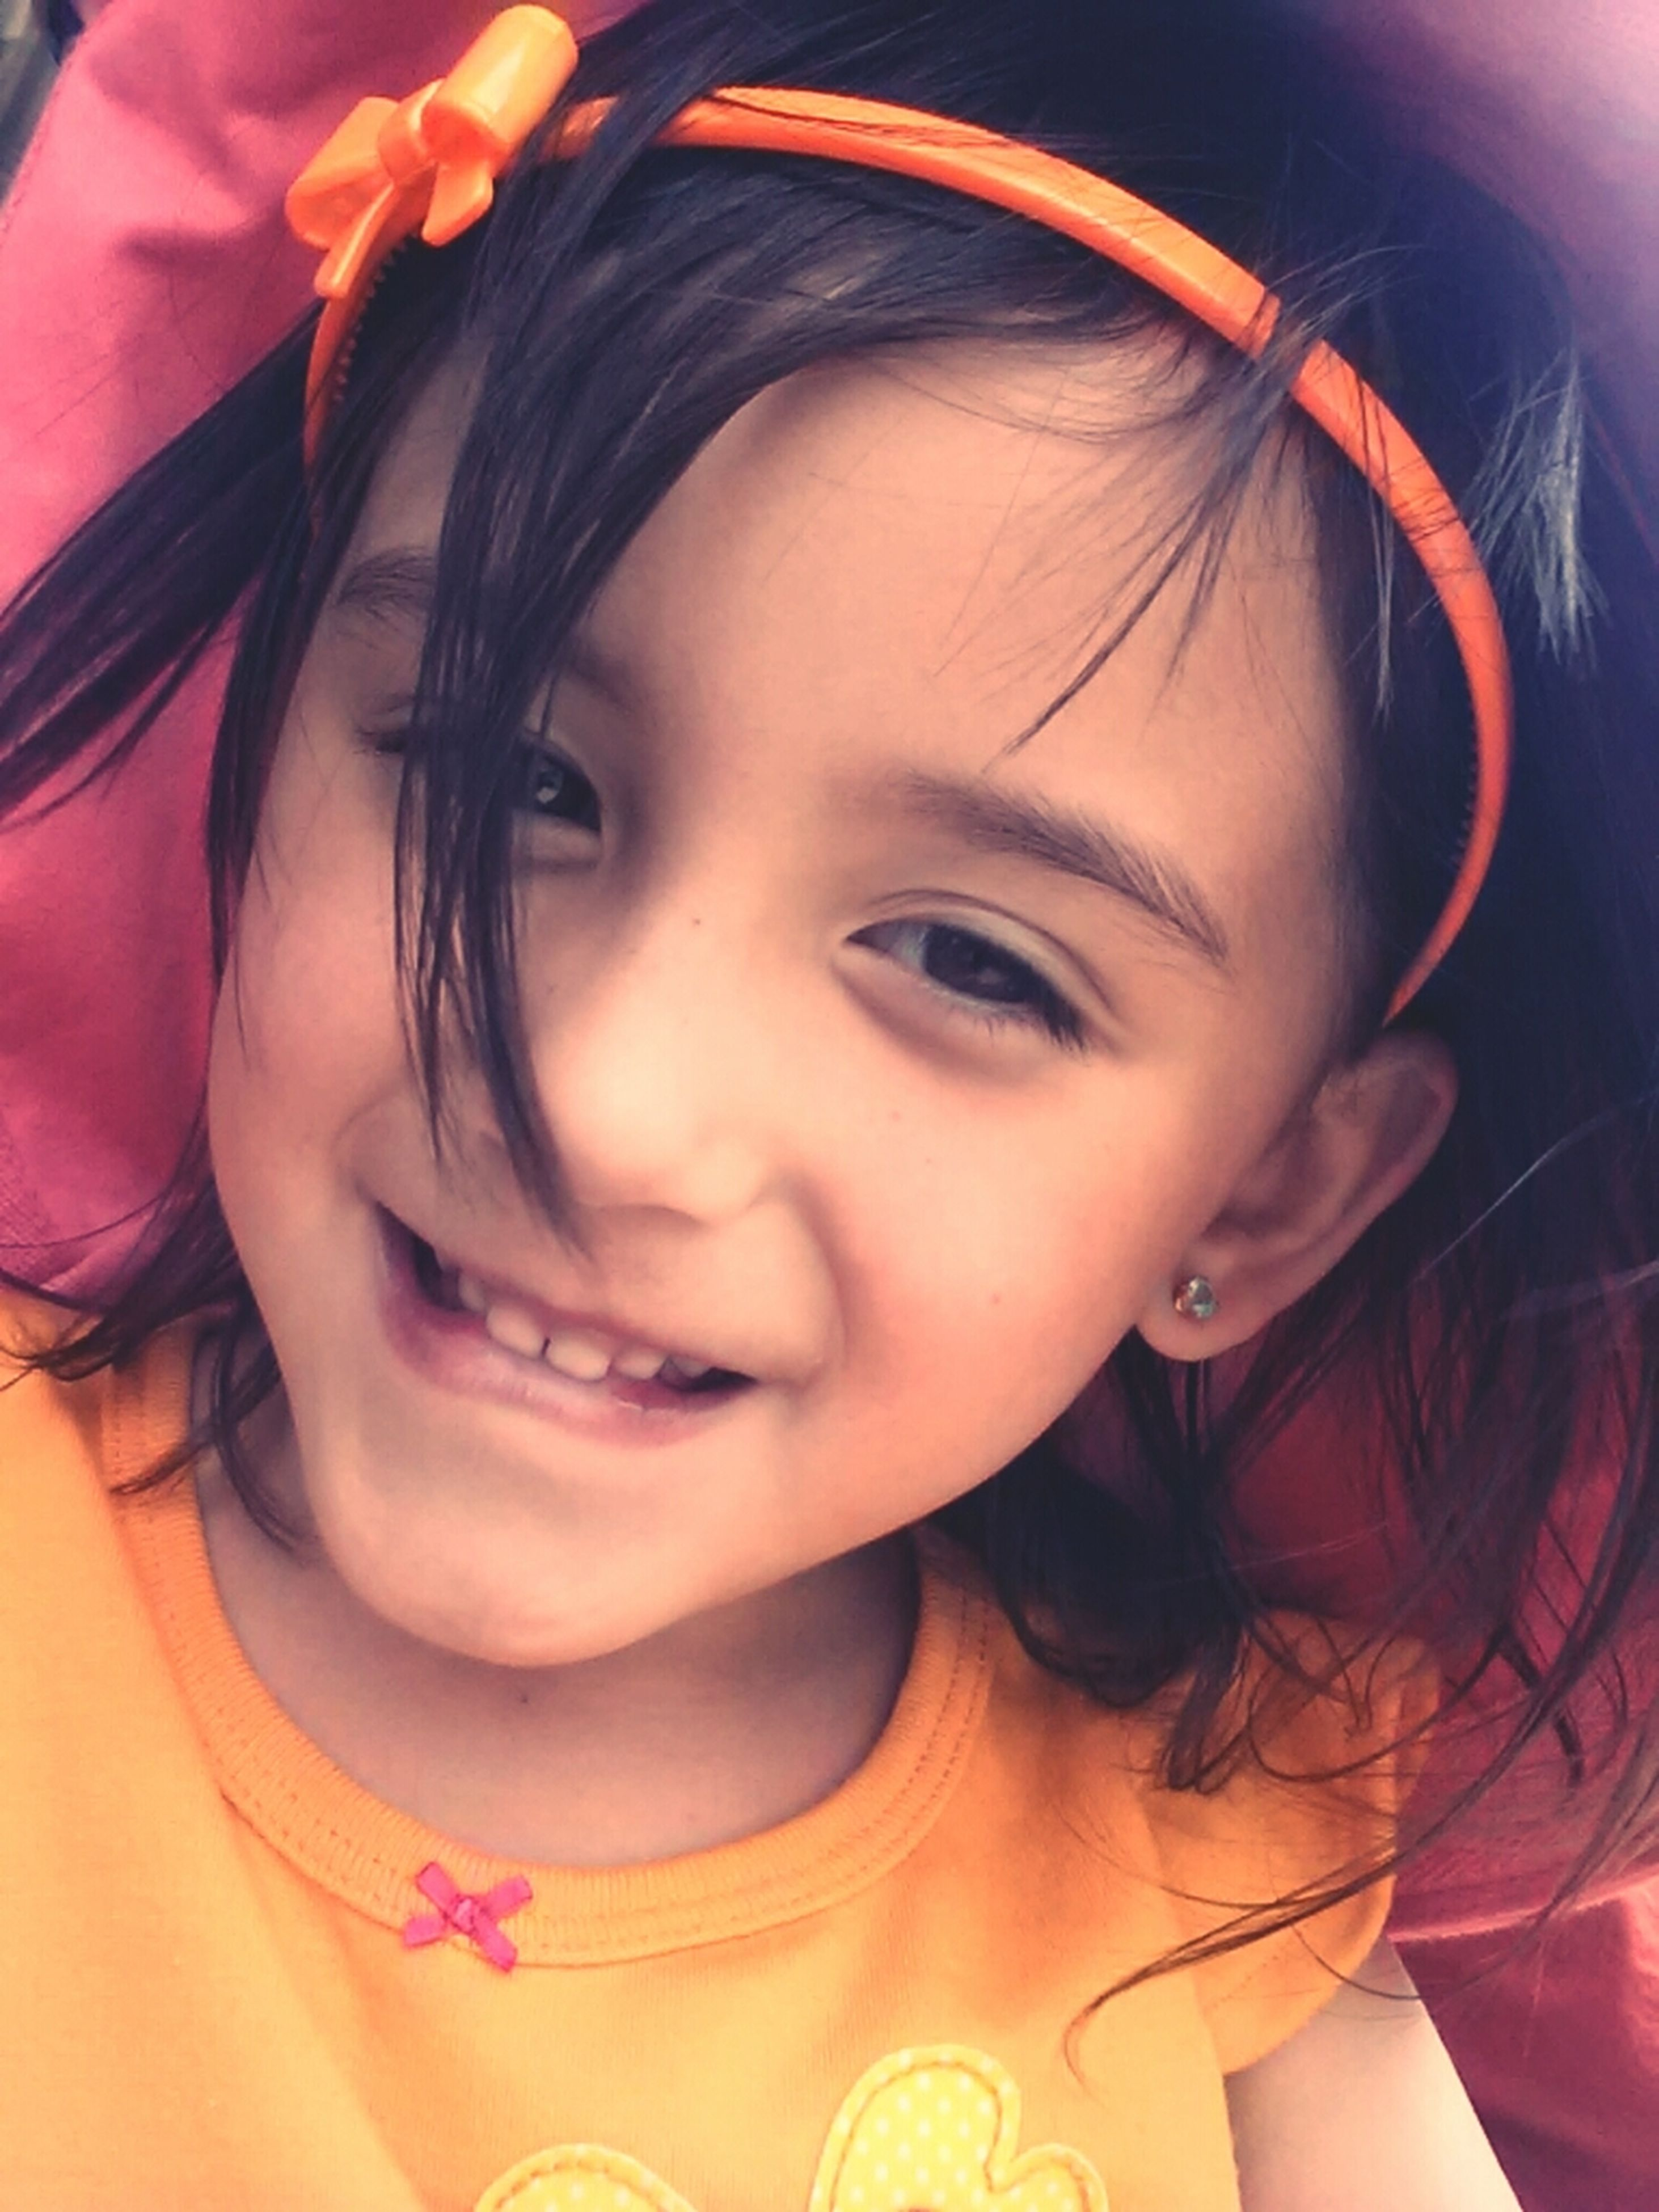 person, childhood, looking at camera, portrait, elementary age, headshot, innocence, lifestyles, cute, girls, leisure activity, smiling, boys, close-up, front view, casual clothing, happiness, head and shoulders